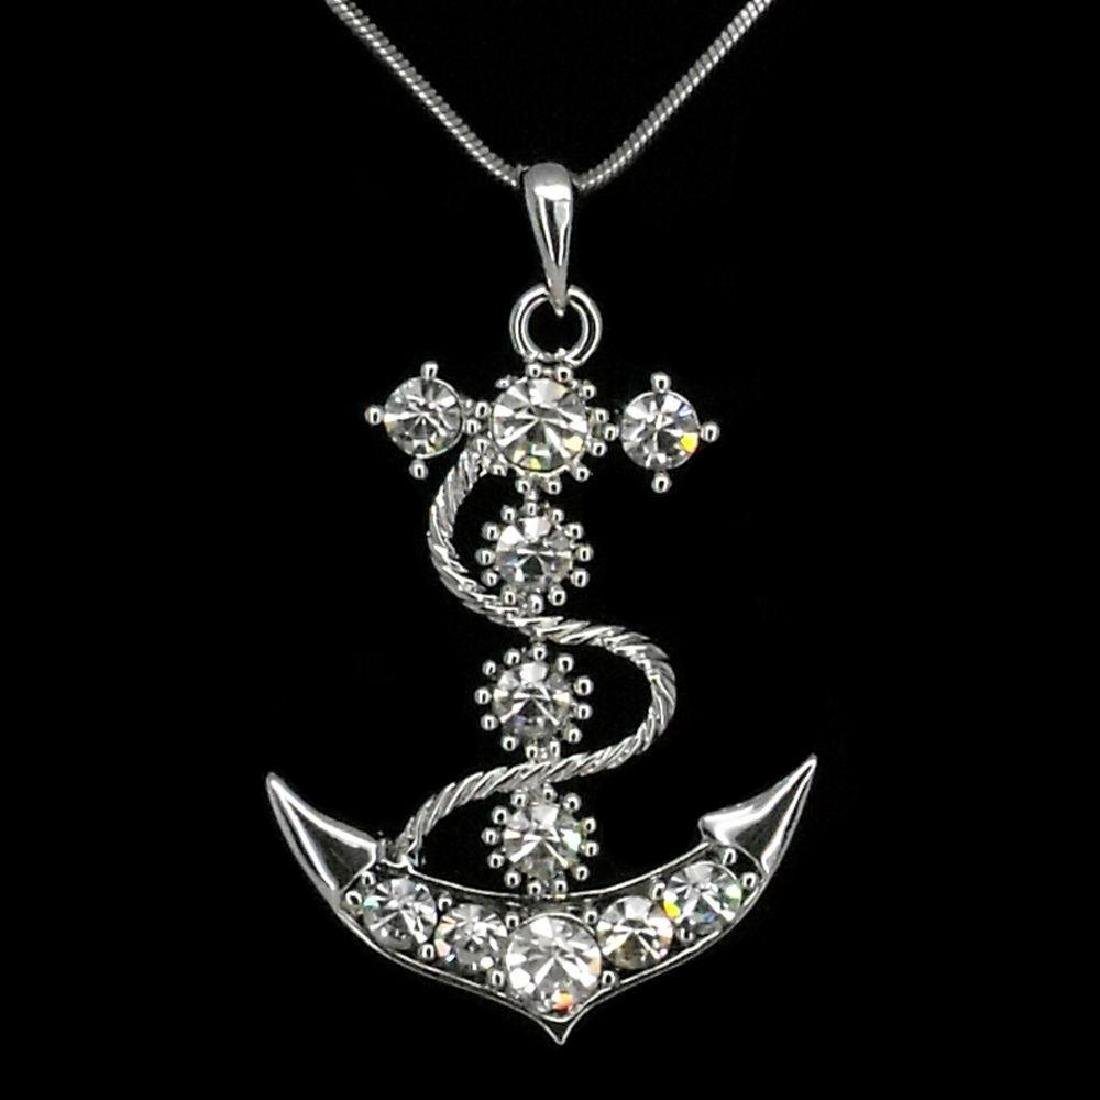 Smooth Sailing Anchor Necklace Pendant Jewelry 18k W Gp